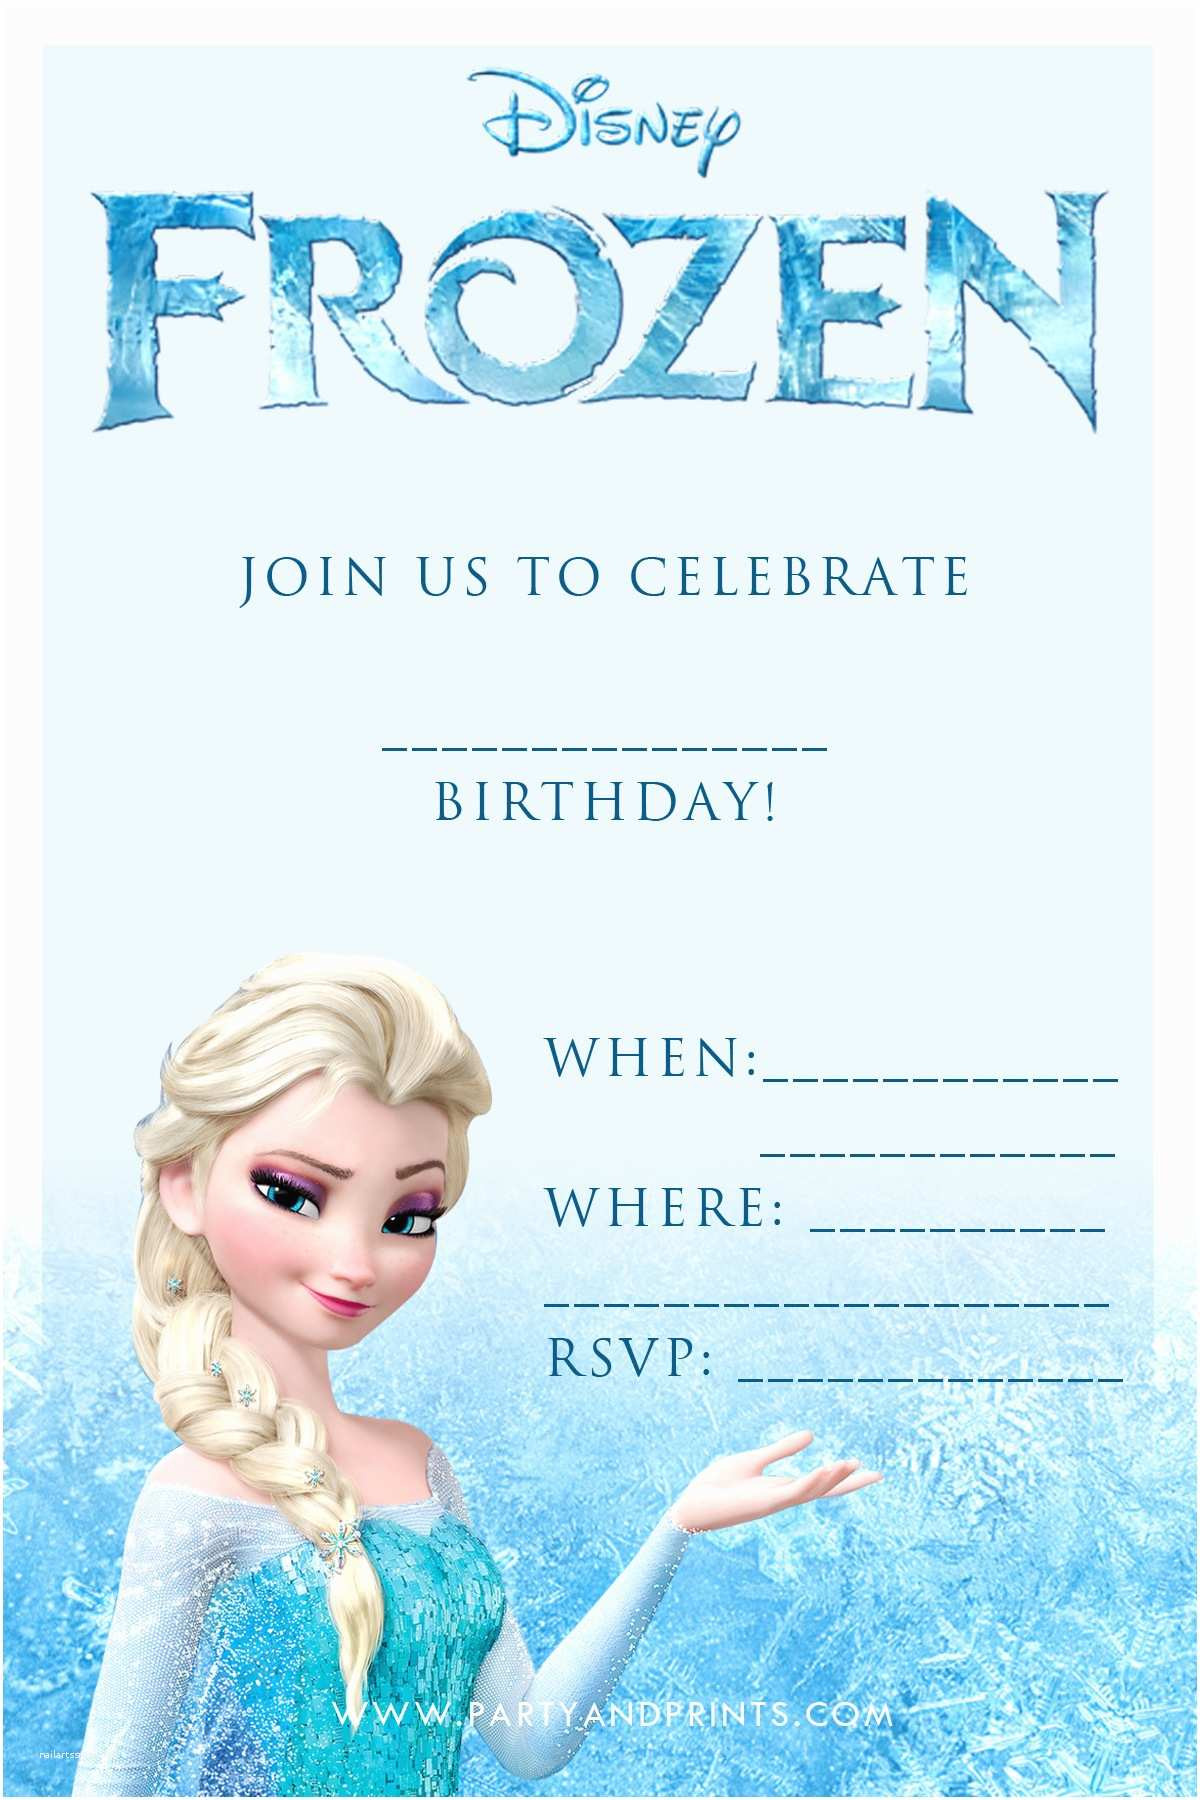 Frozen Printable Birthday Invitations Disney Birthday Invitations Free Printable Disney Frozen